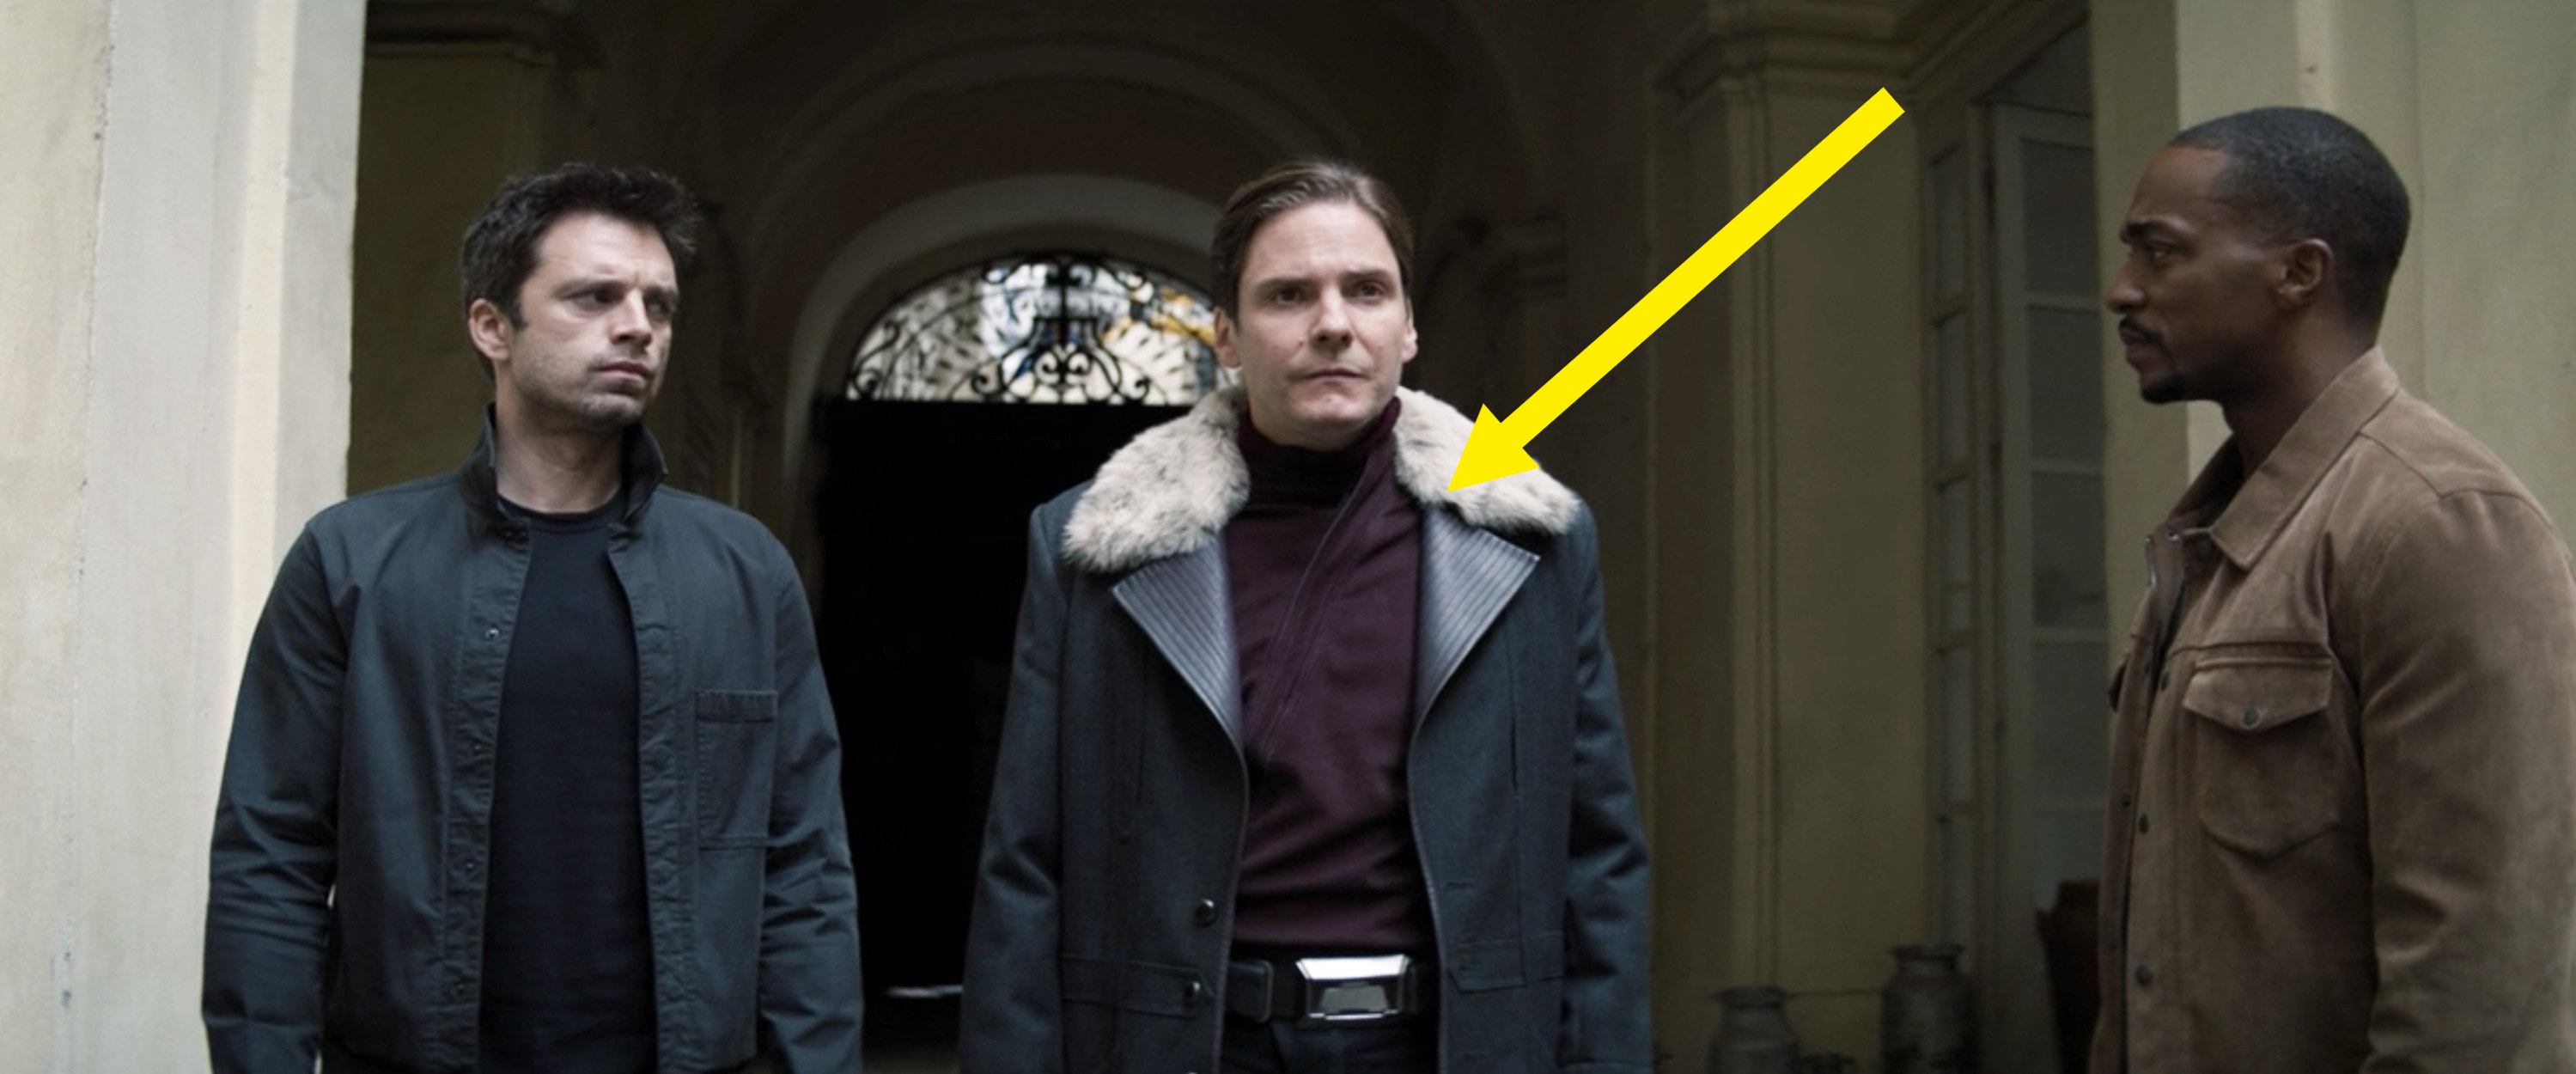 An arrow pointing out Zemo's purple sweater